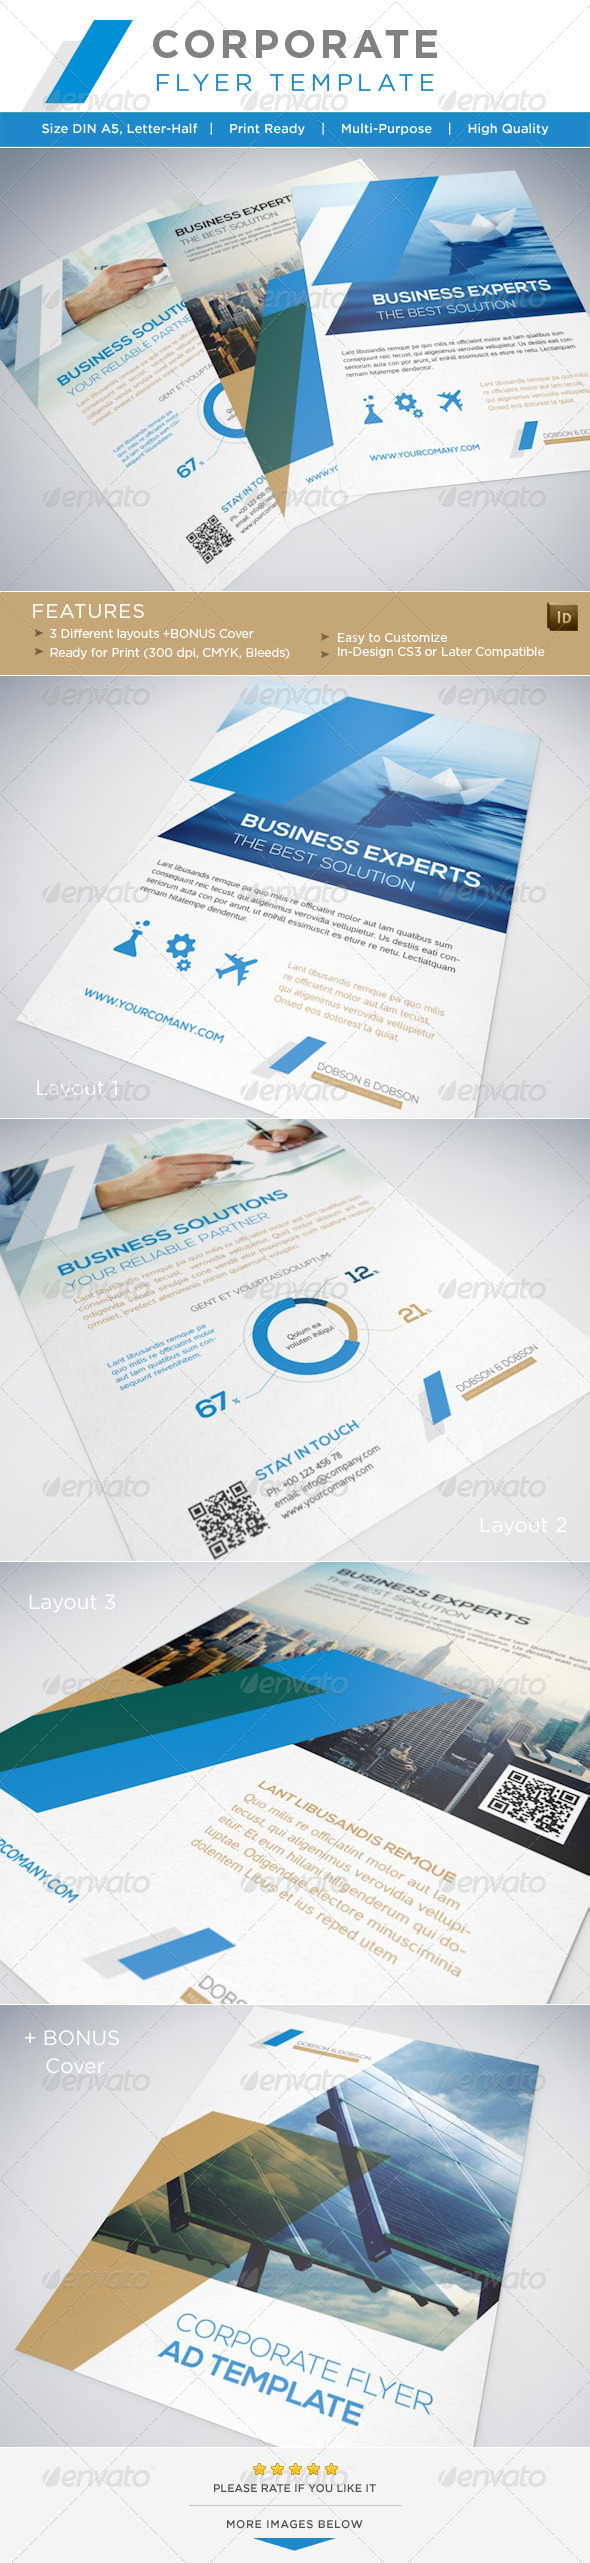 GraphicRiver Corporate Flyer AD Template 3404074